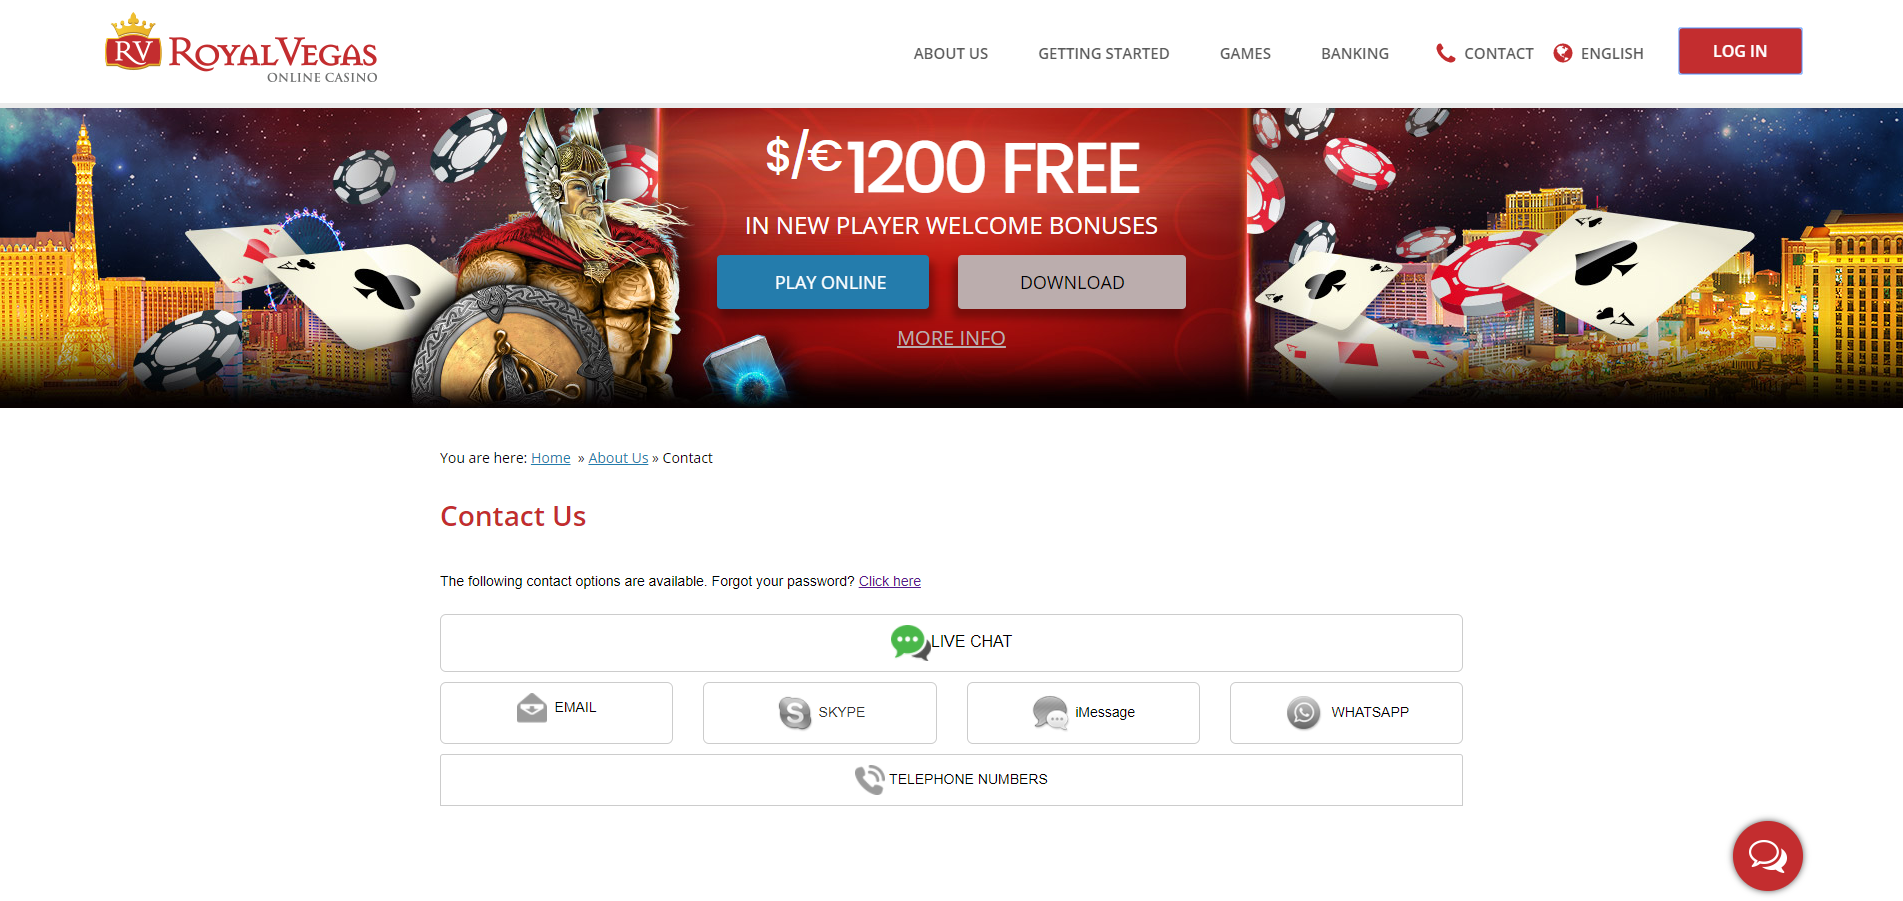 Winward Casino Online Review With Promotions & Bonuses